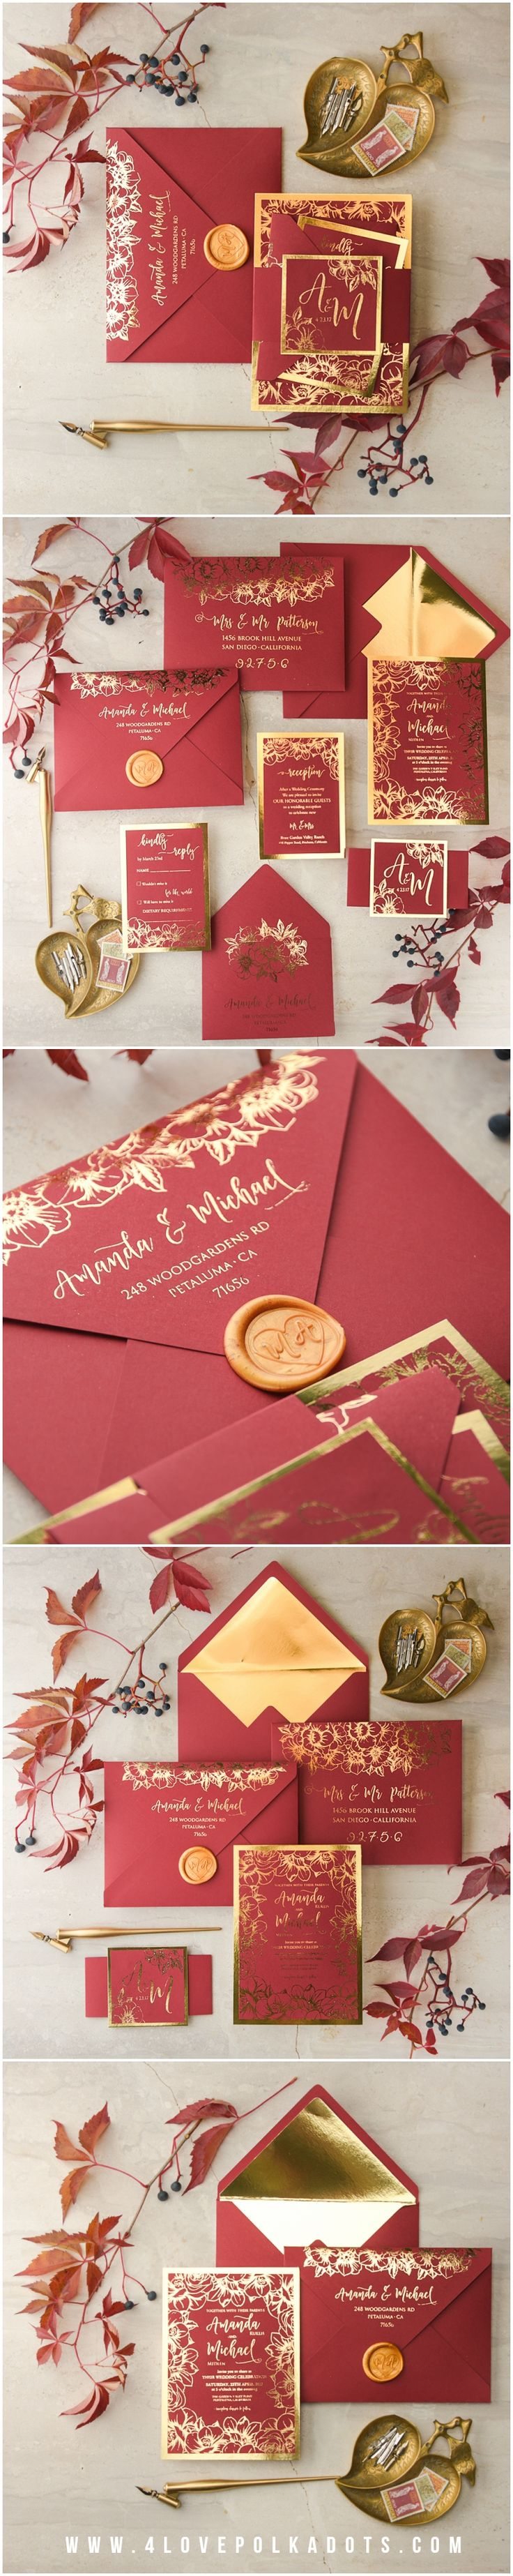 Marsala & Gold Wedding Invitations - with rose gold instead these would be perfect!